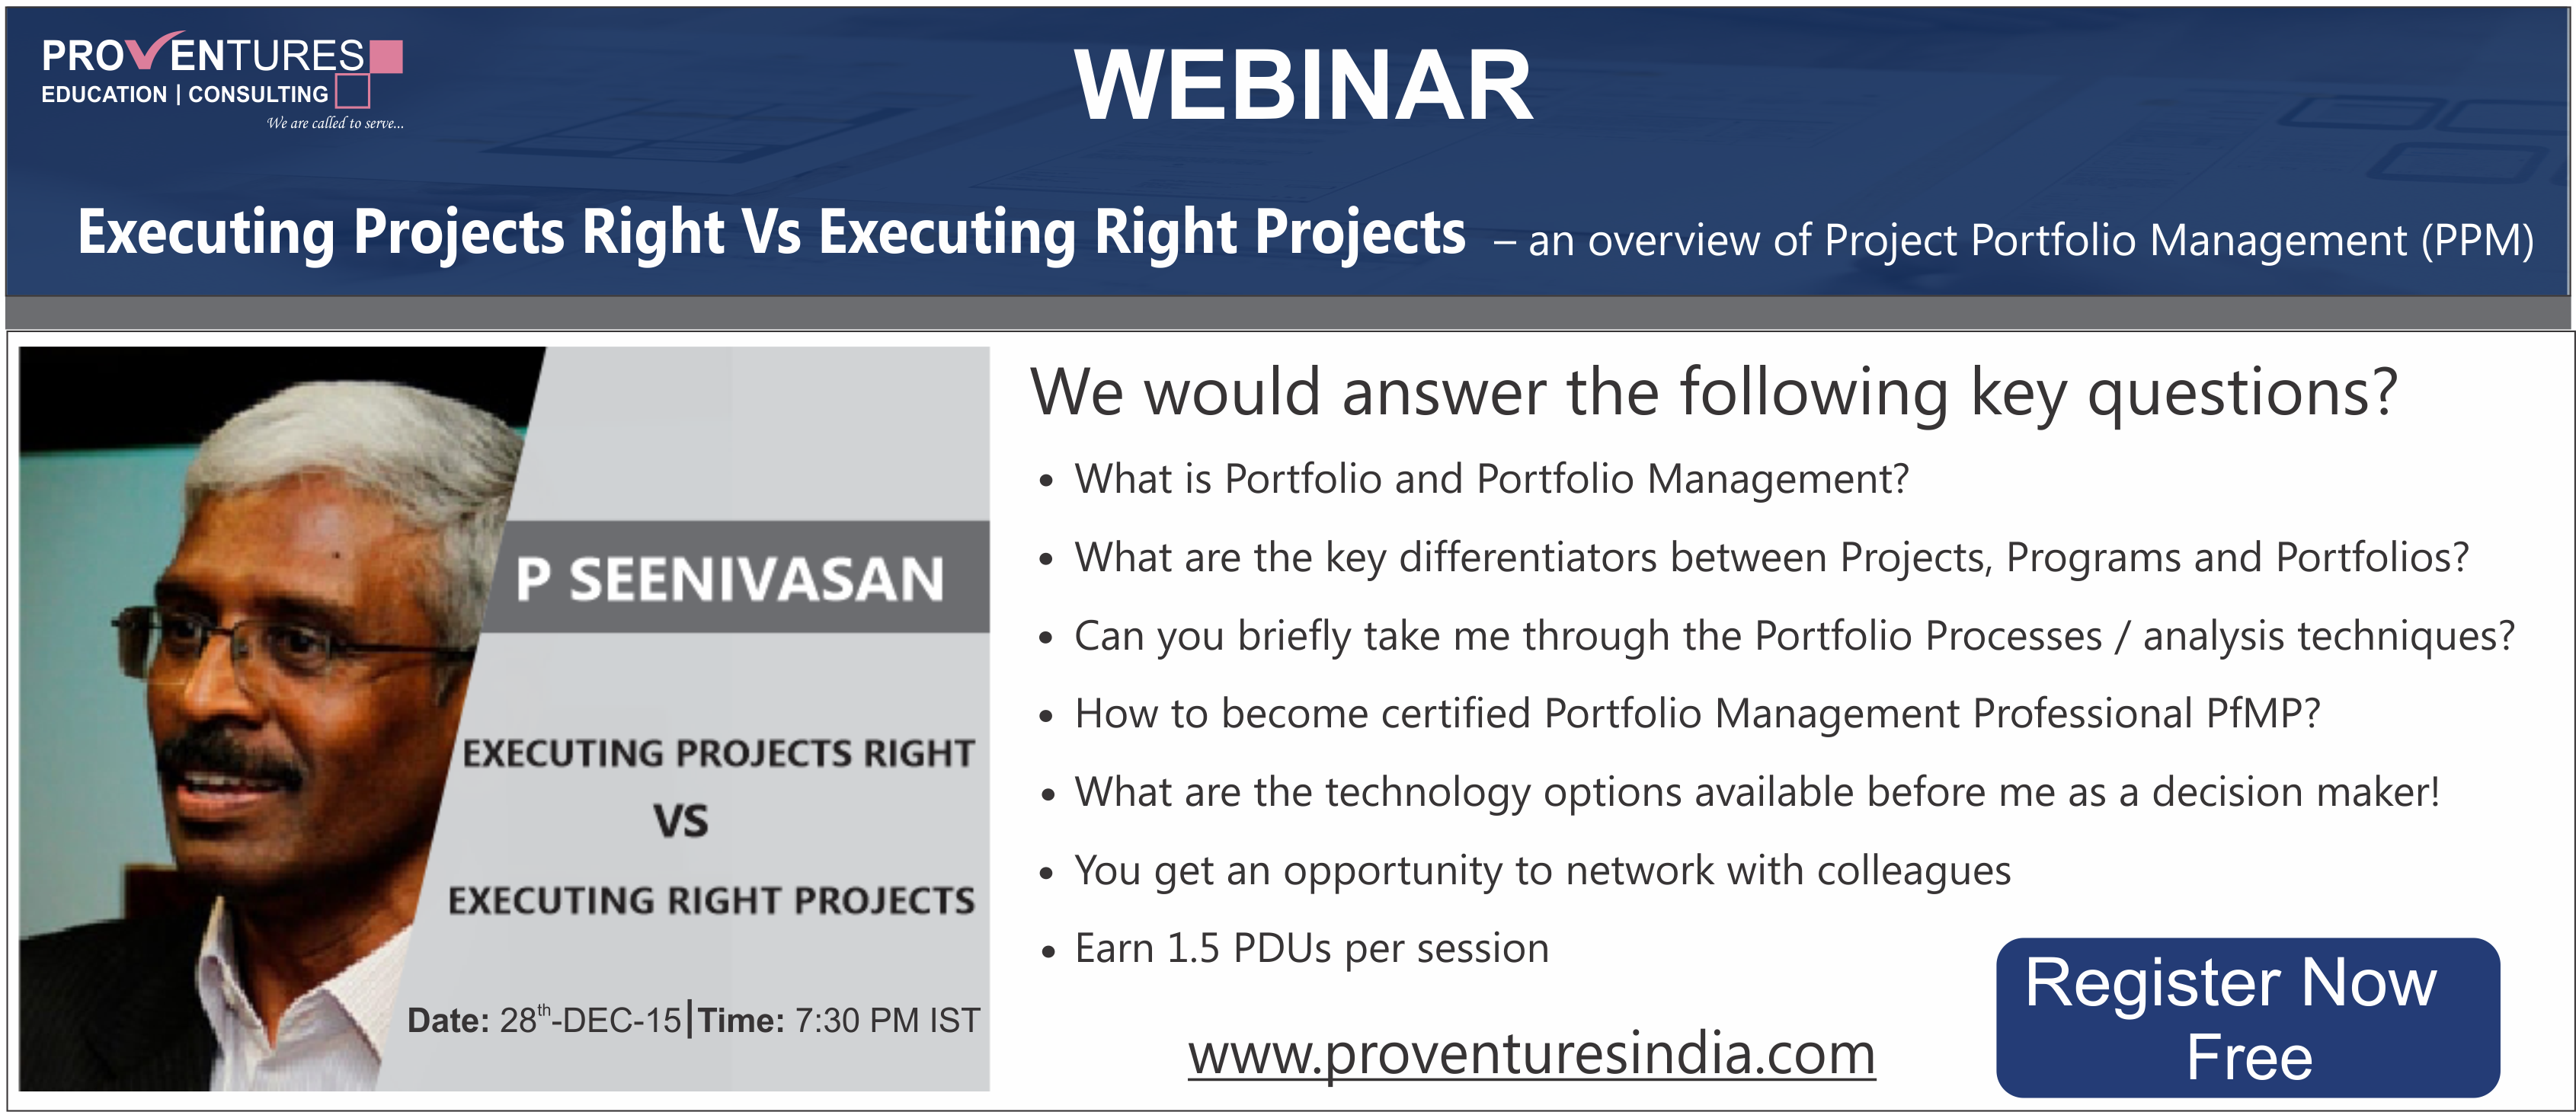 Book Online Tickets for WEBINAR : Executing Projects Right Vs Ex, . What are the benefits of attending this session?